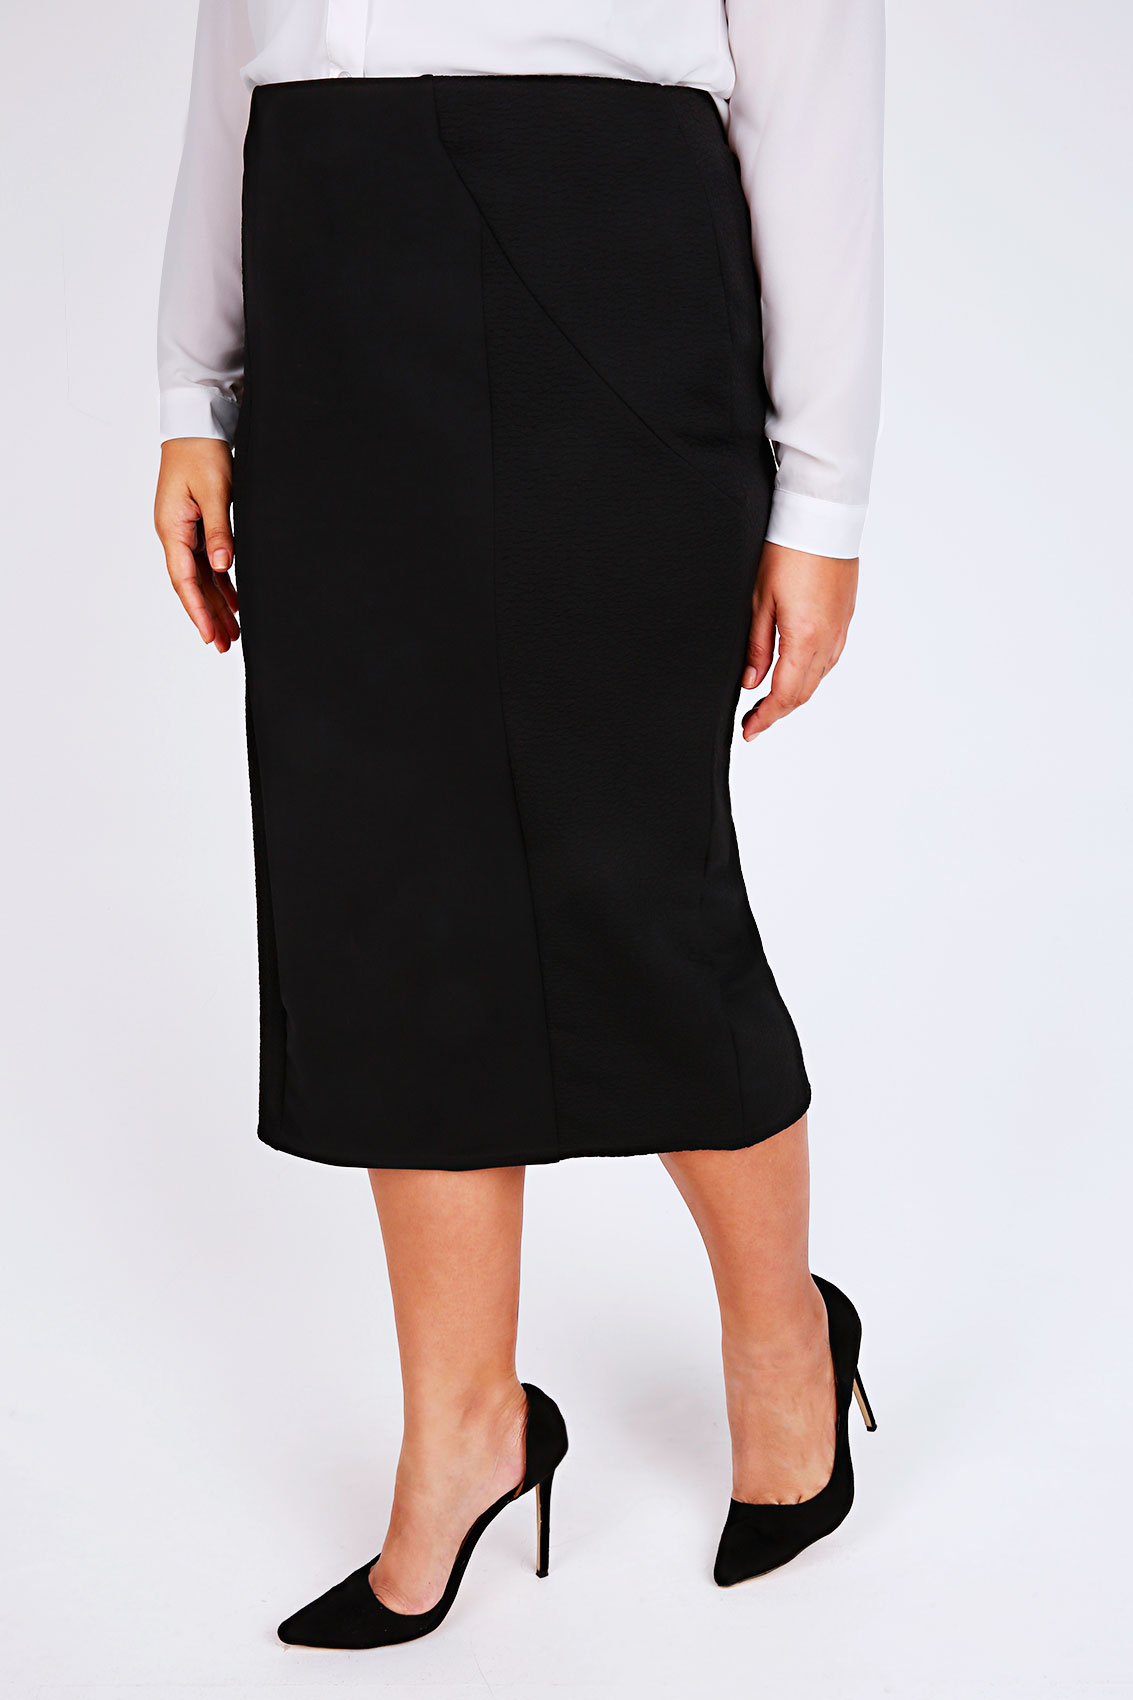 Buy the latest black high waisted skirt cheap shop fashion style with free shipping, and check out our daily updated new arrival black high waisted skirt at loadingbassqz.cf